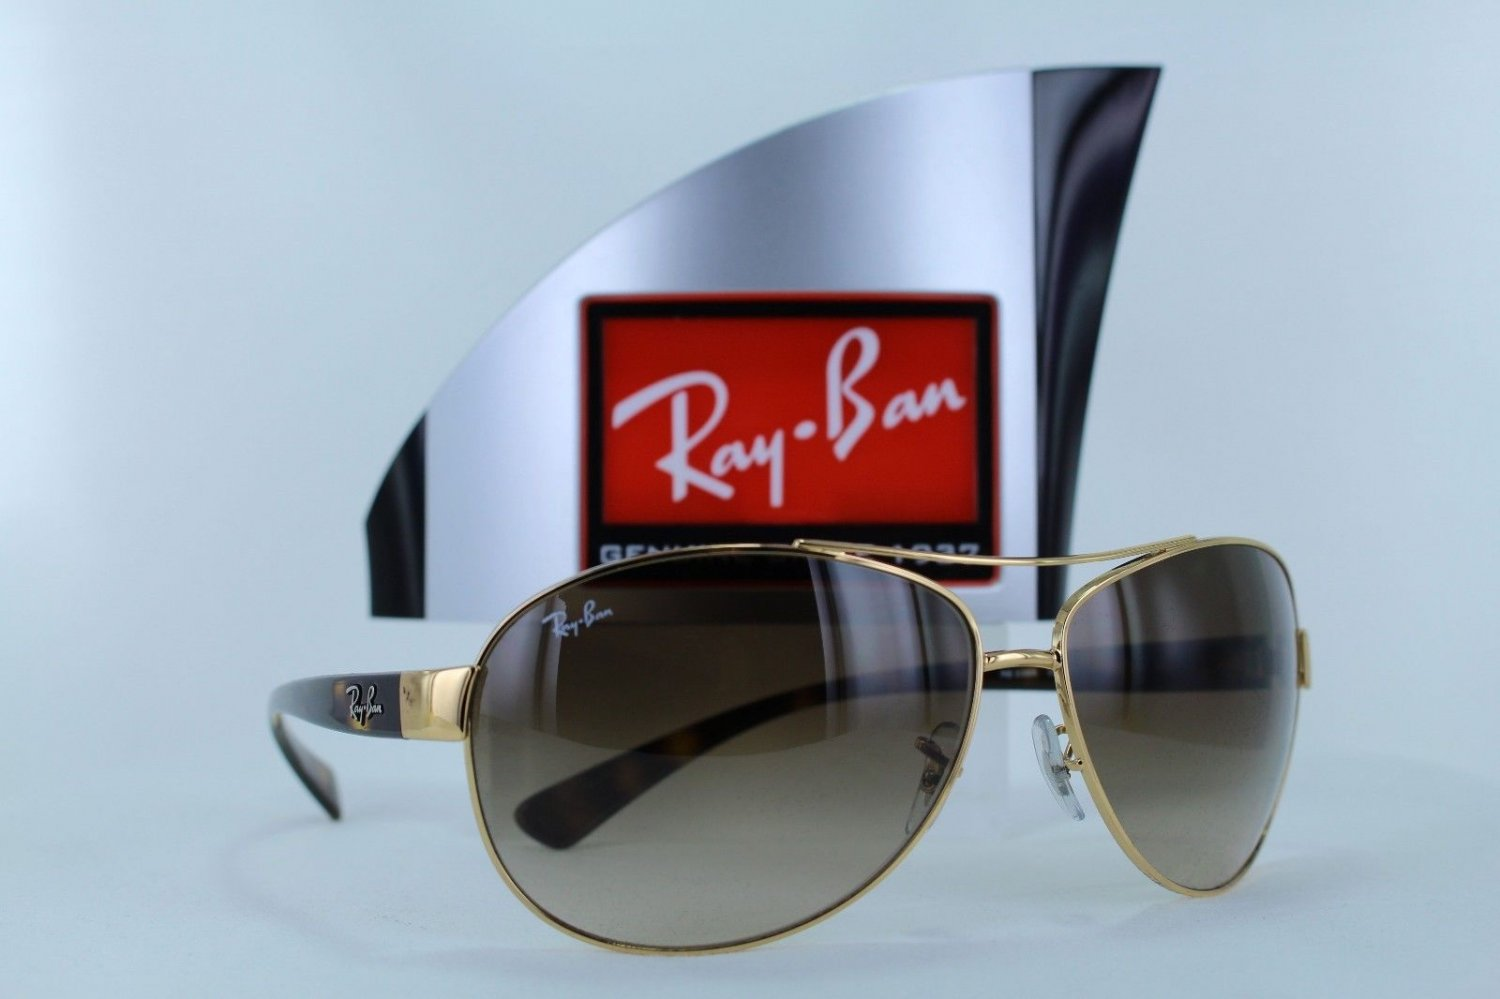 Ray-Ban Sunglasses Aviator 3386 001/13 63 Gold / Tortoise Brown New & Original